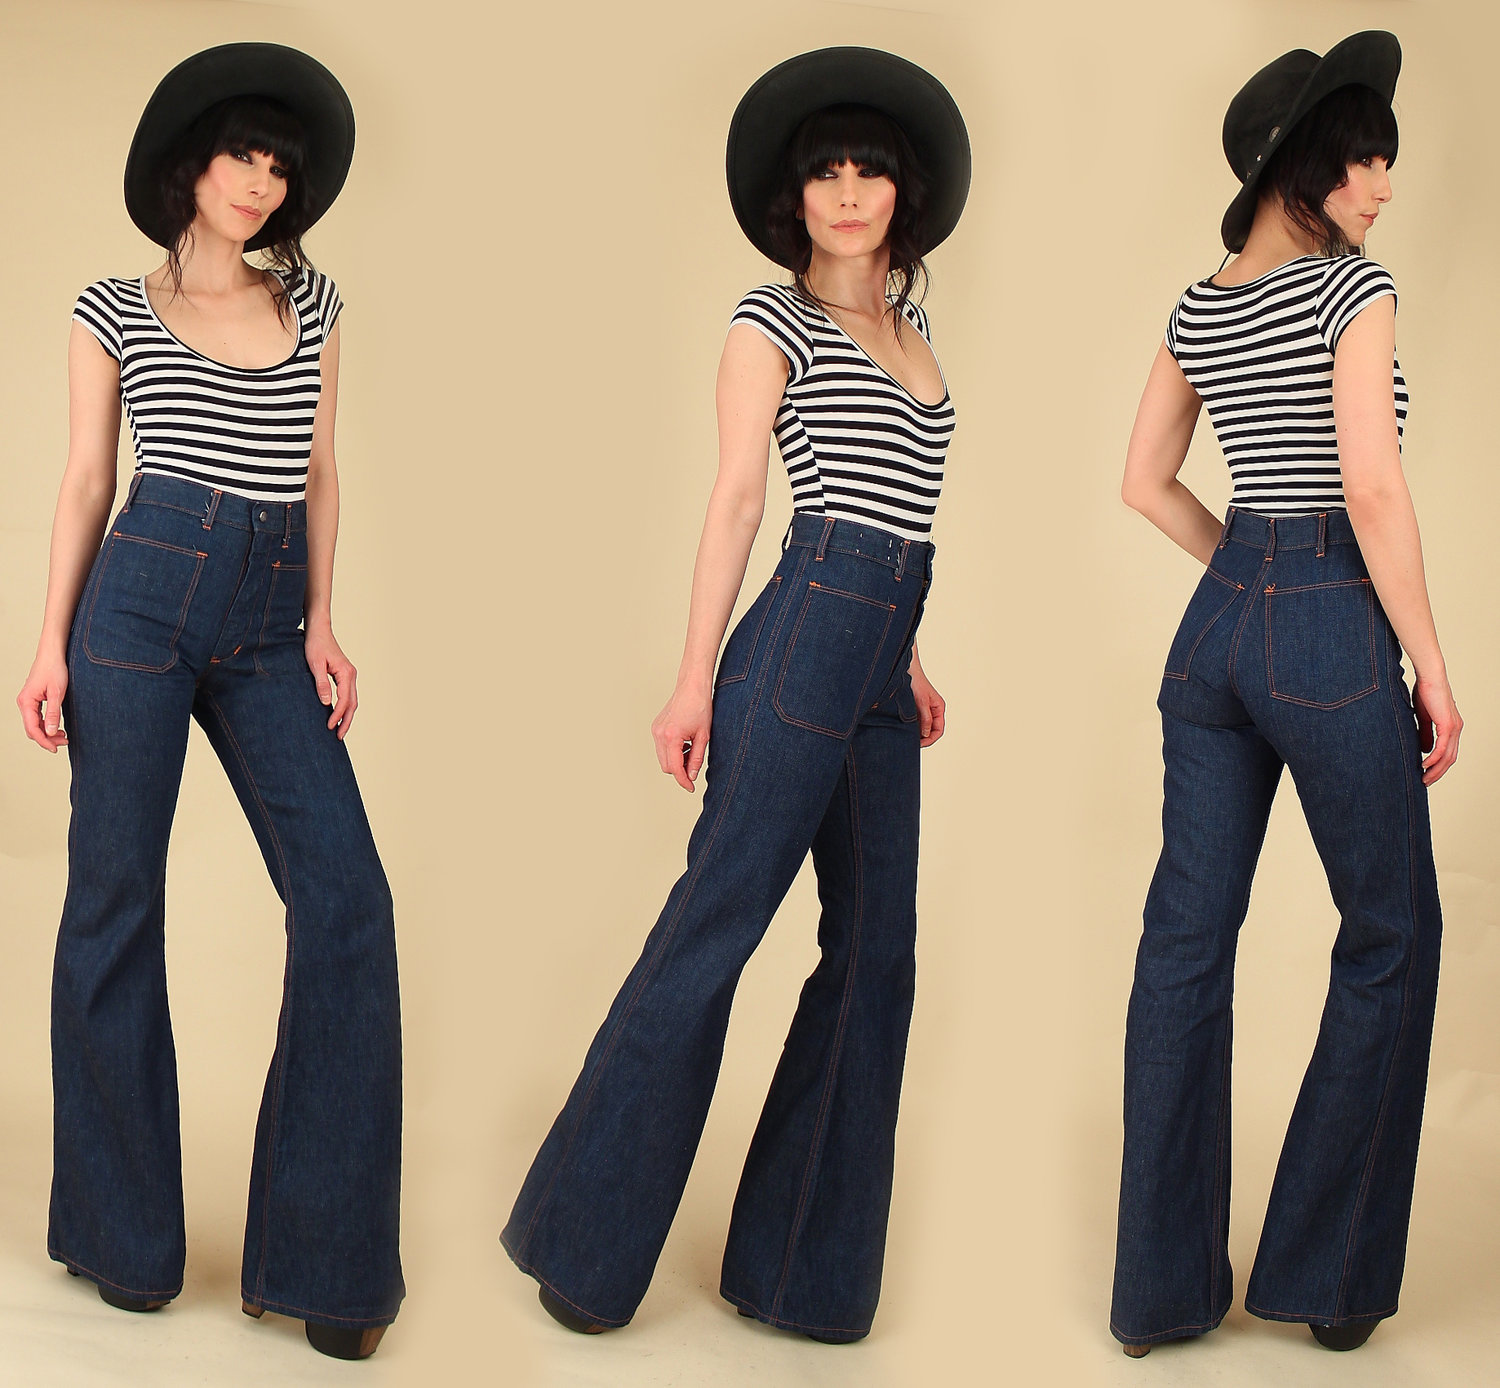 0e31be7828 Vintage 70s High Waisted Bell Bottoms // 1970s Denim // Made in USA ...